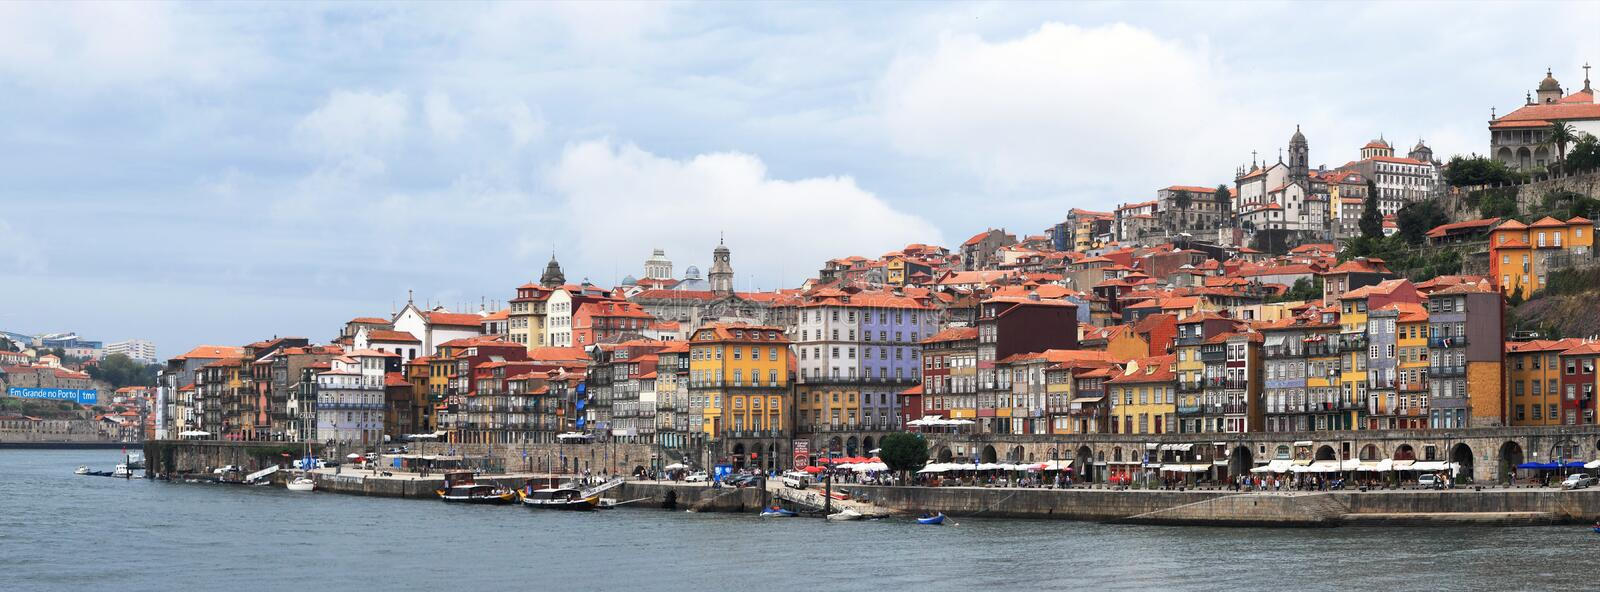 Oporto Portugal stock photo